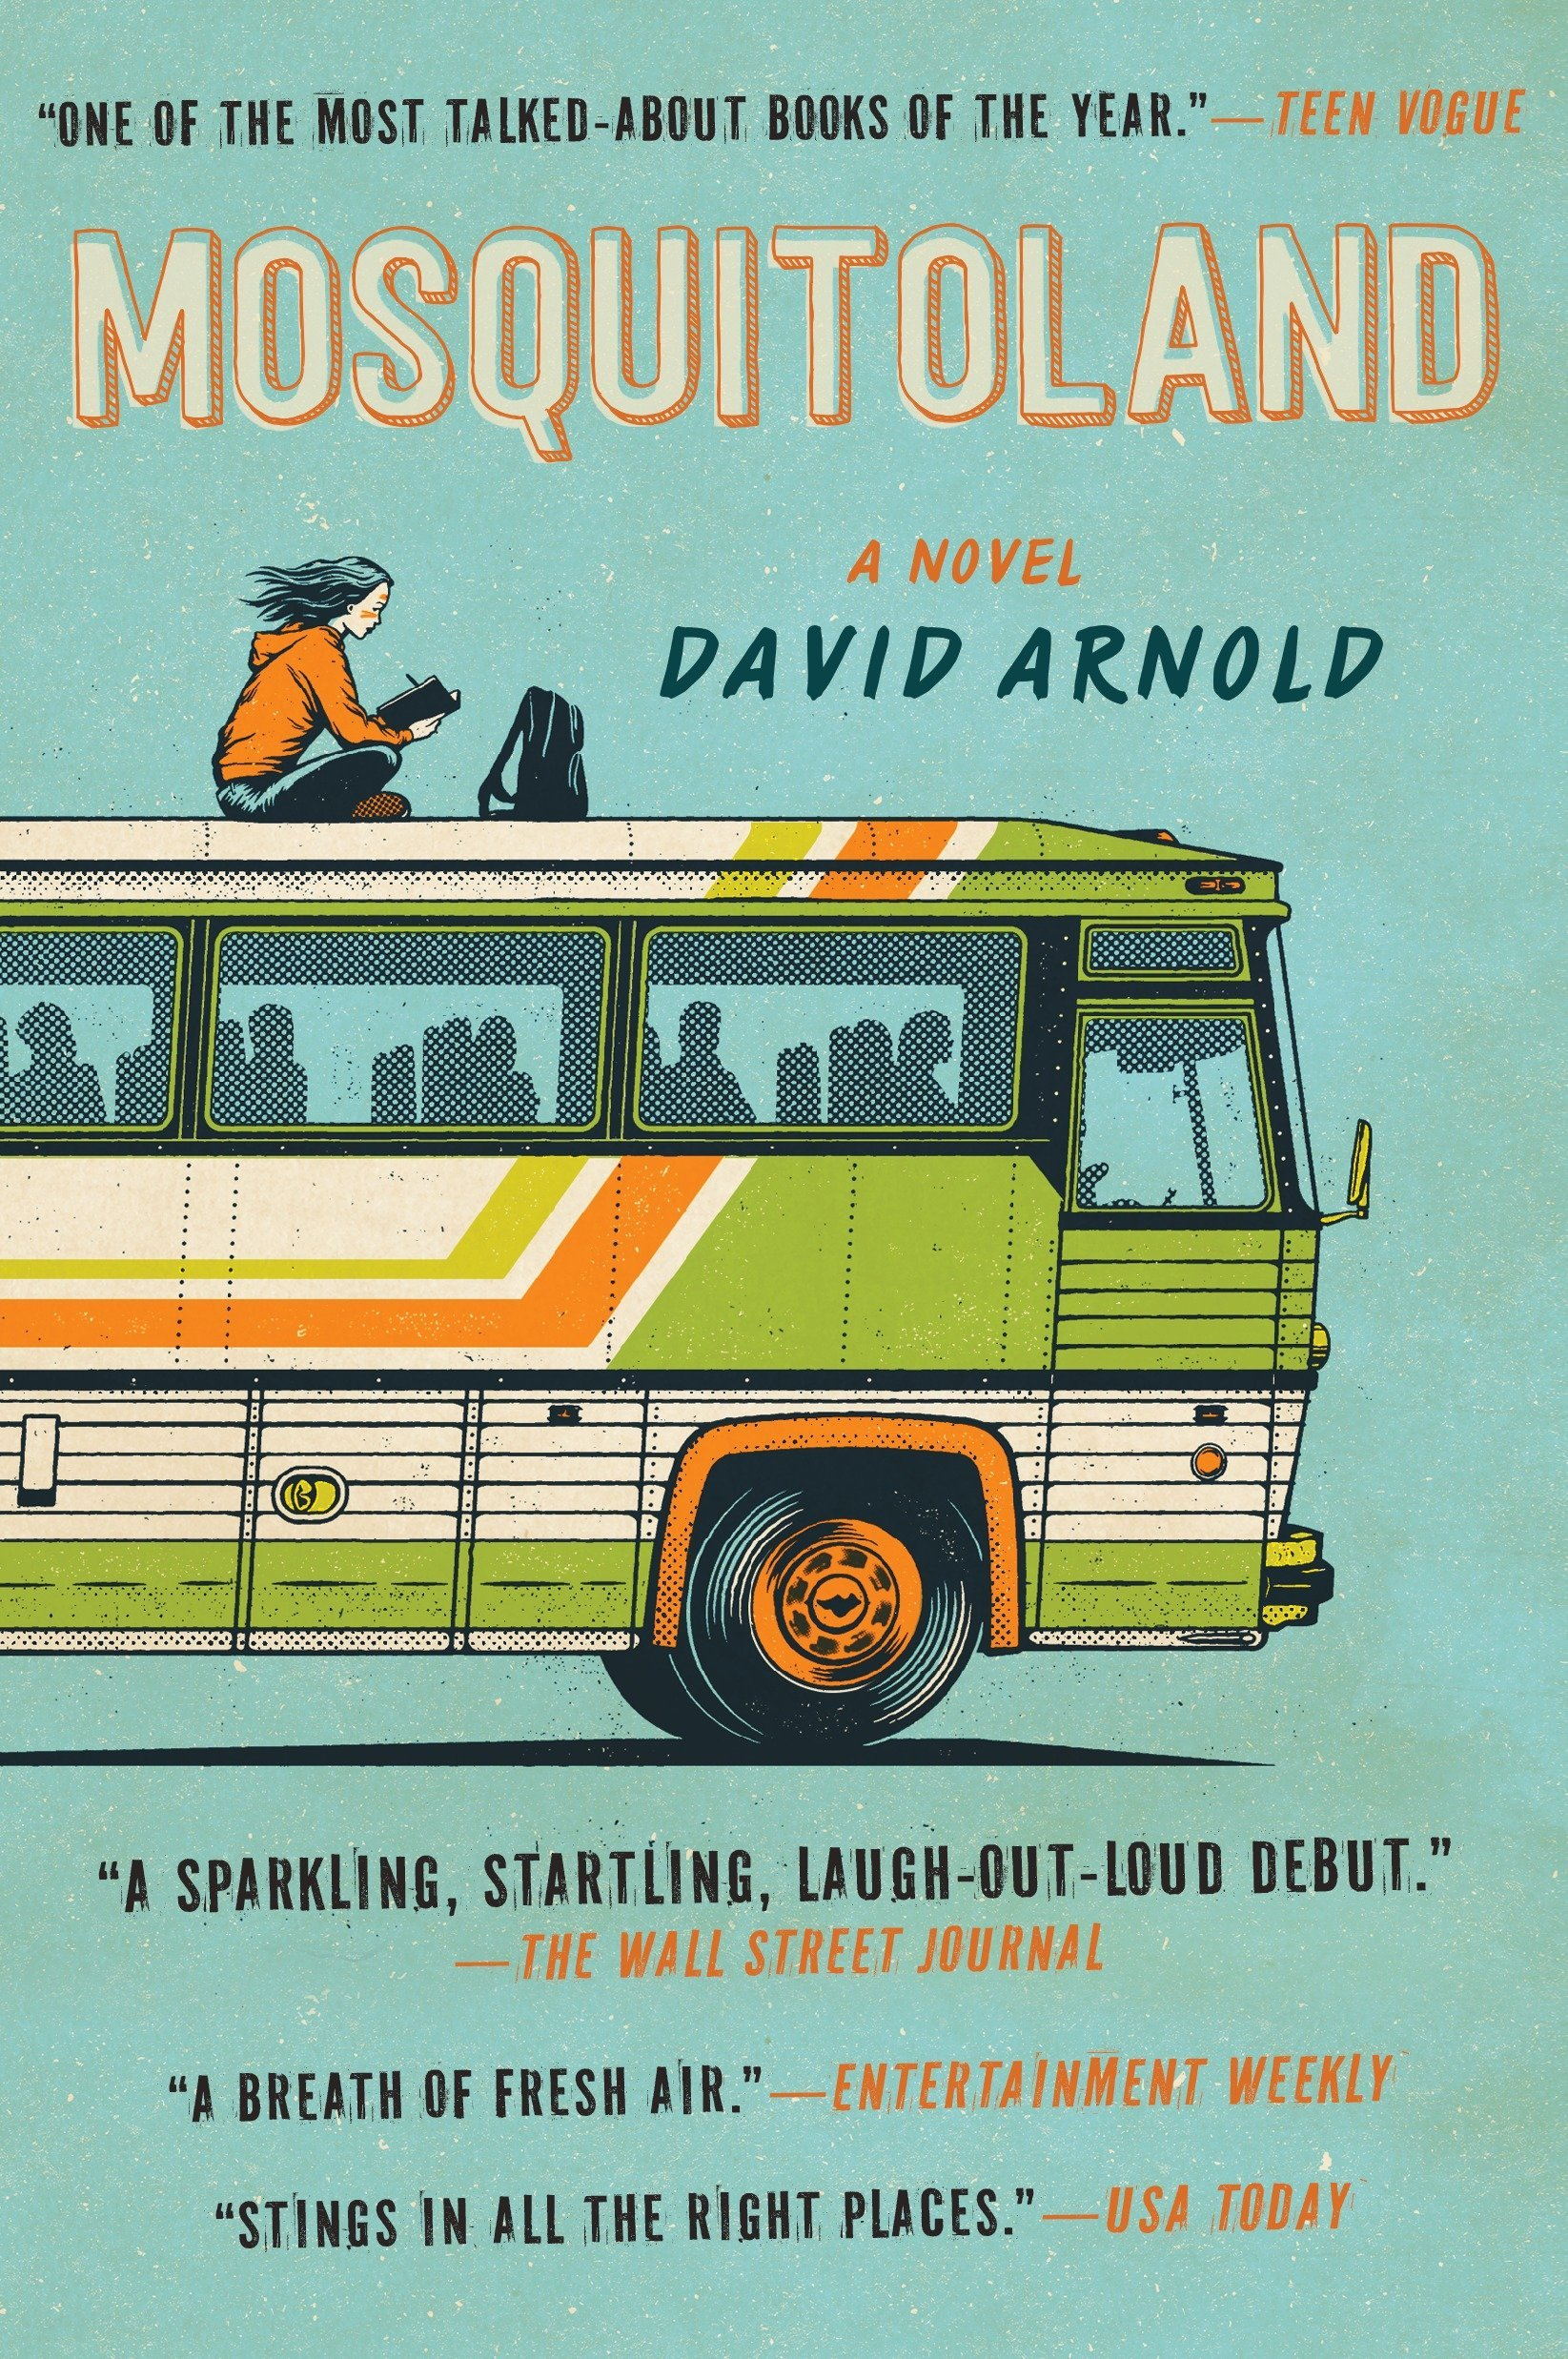 Amazon.com: Mosquitoland (9780147513656): Arnold, David: Books